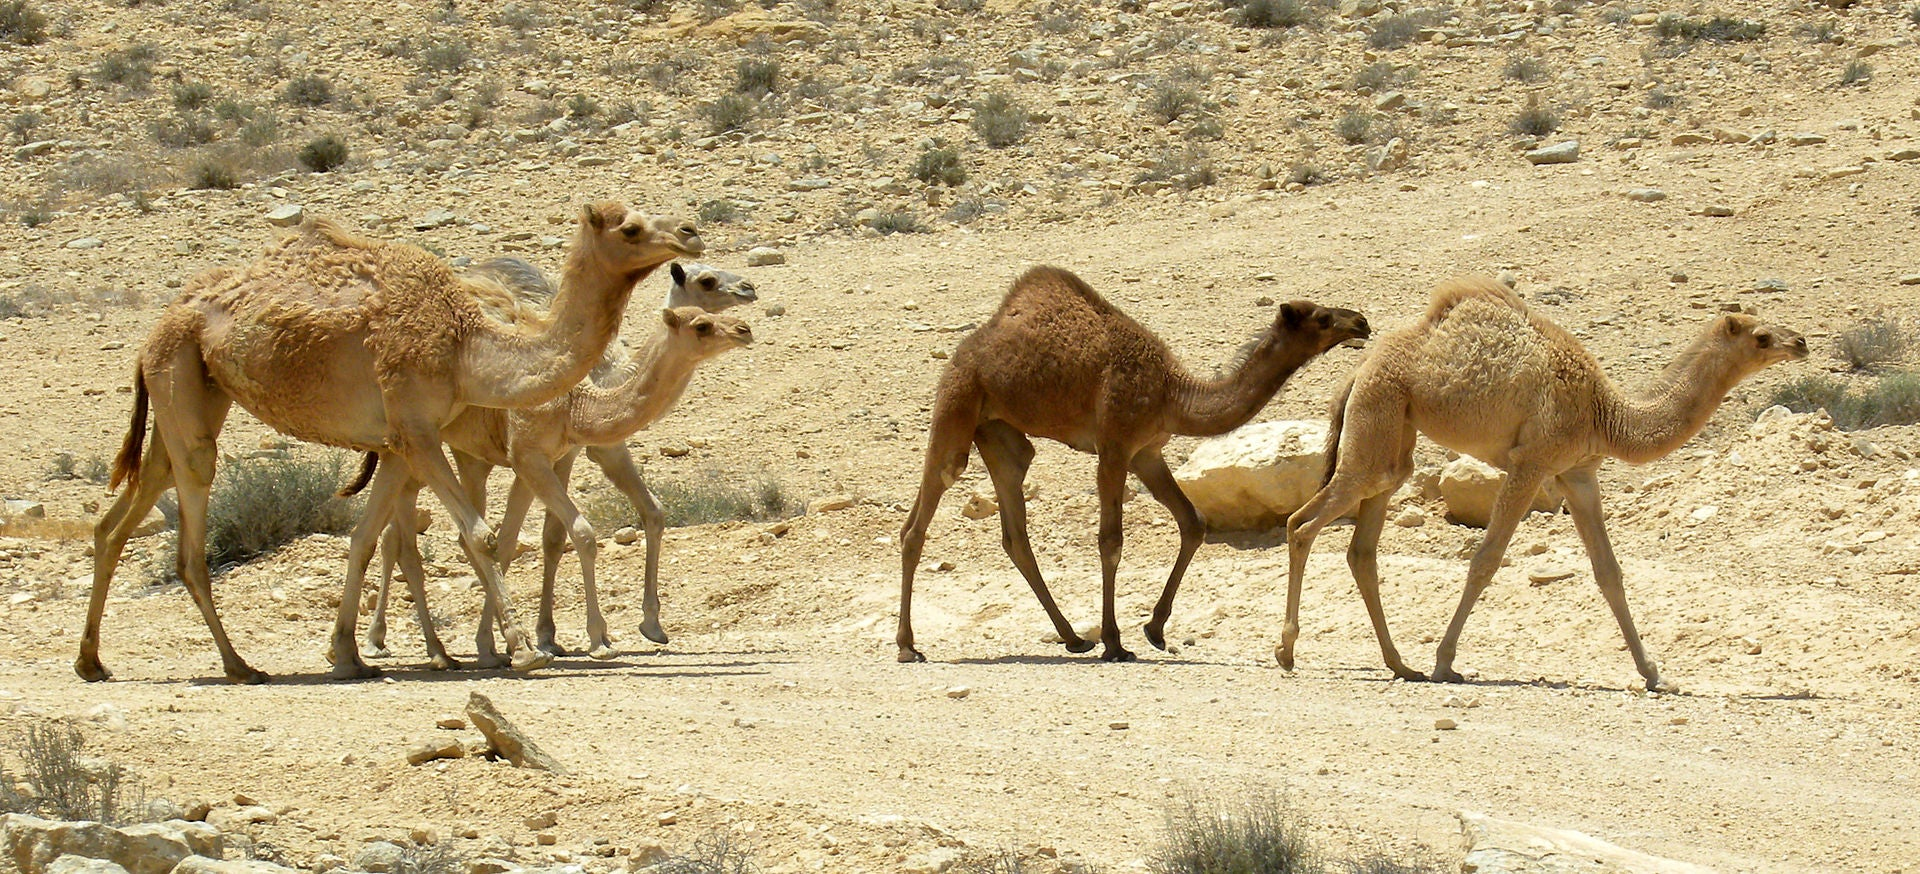 MERS Virus May Be Able To Spread Through The Air